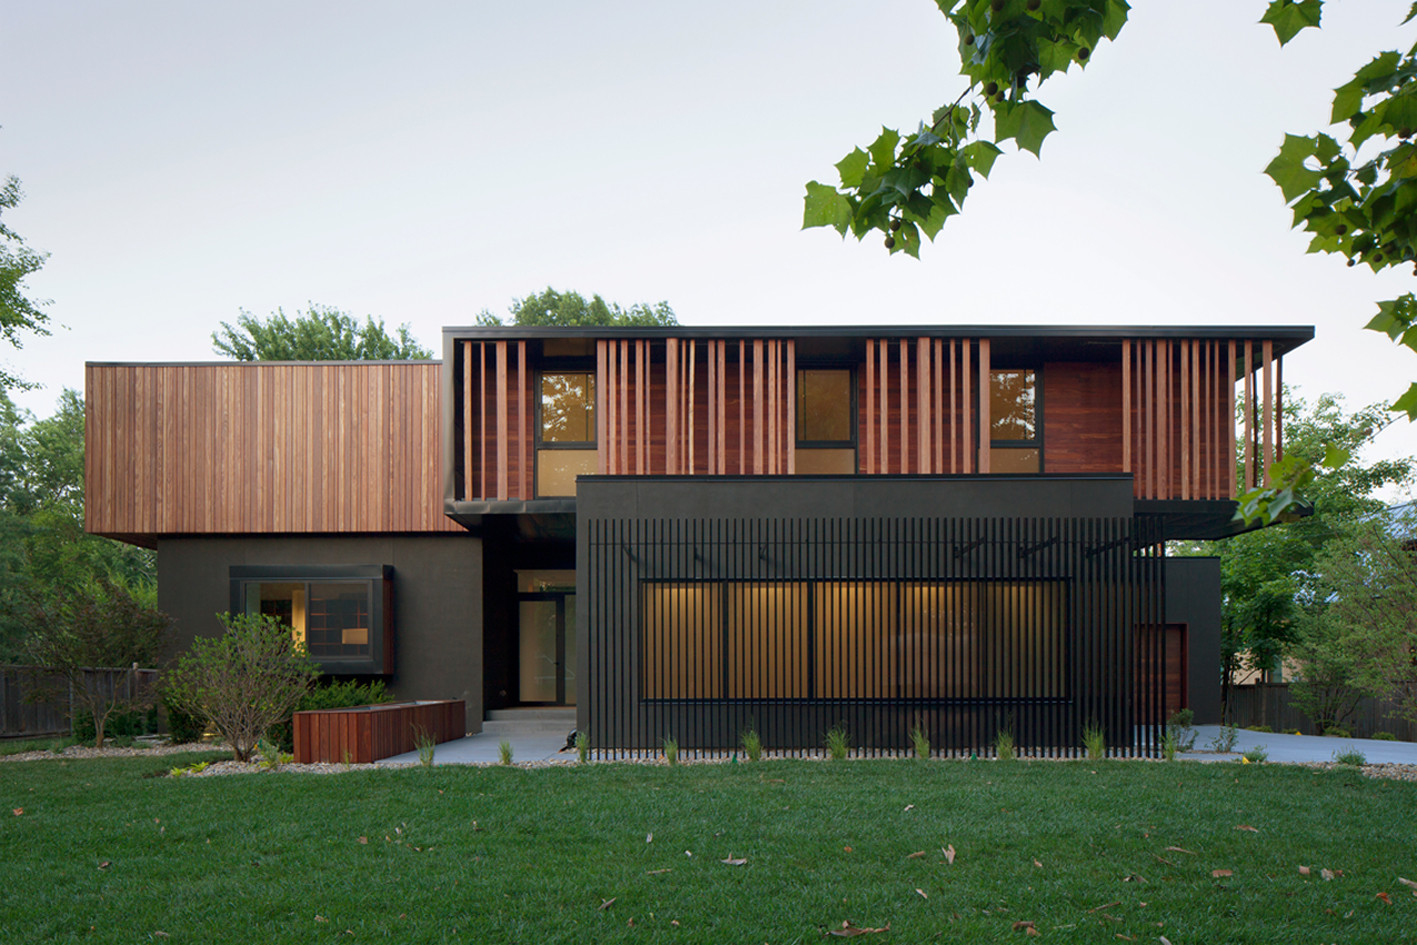 Baulinder Haus Hufft Projects Archdaily